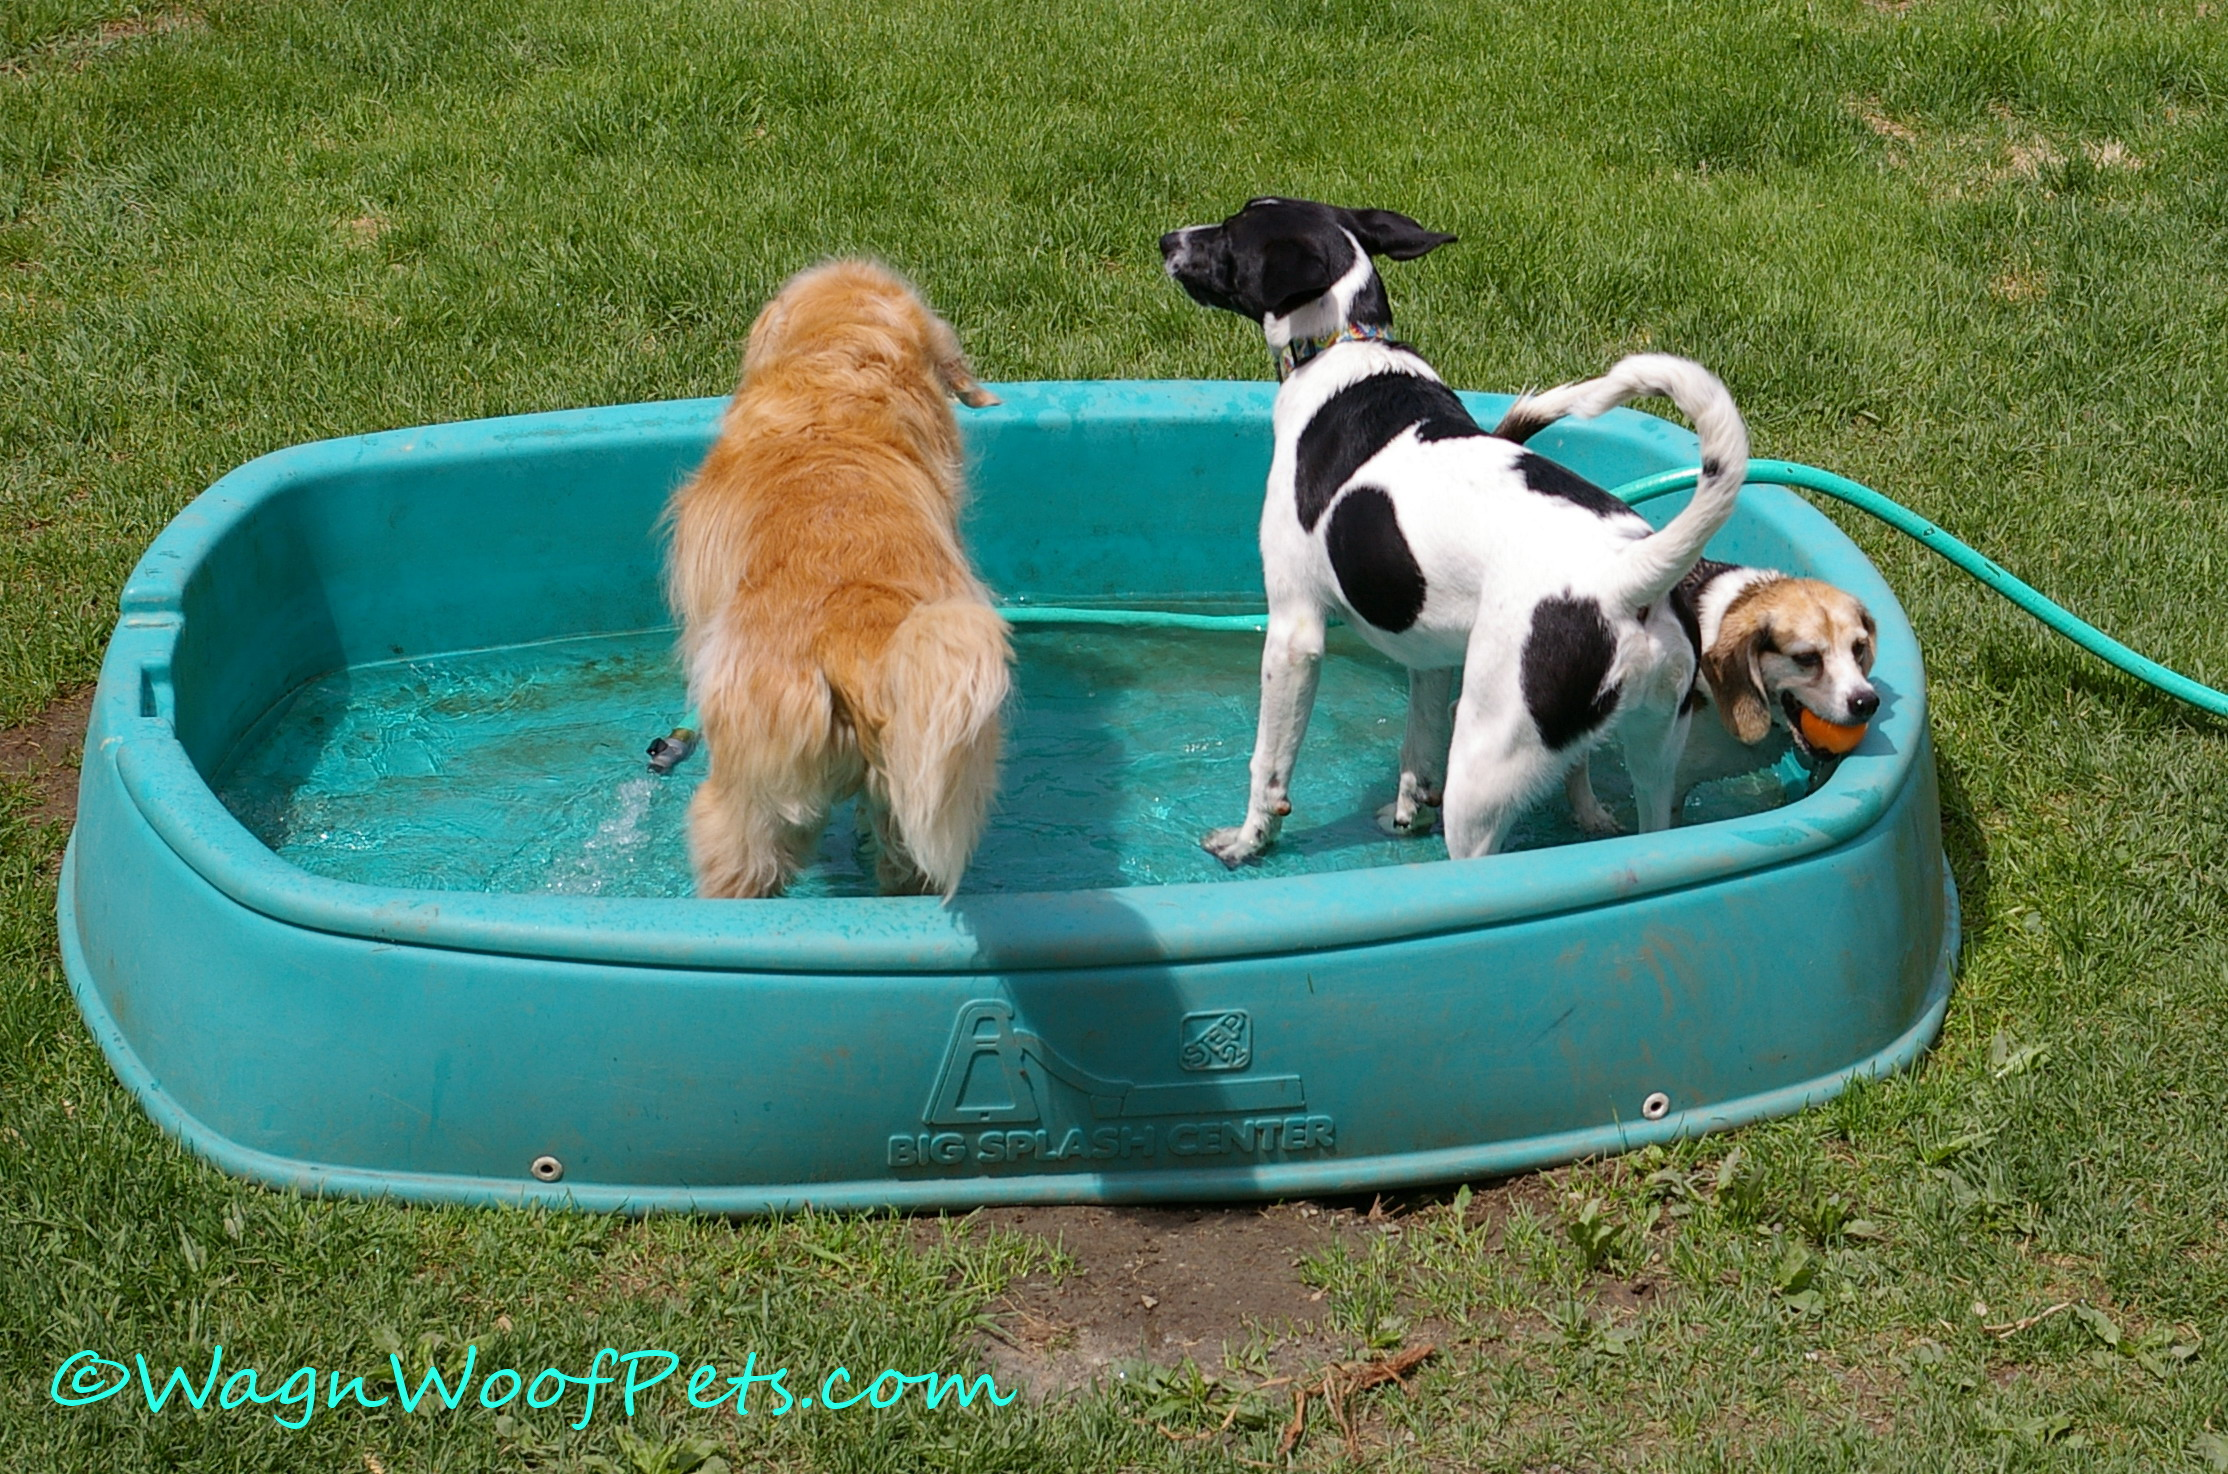 ....but the pool is always available for cooling off!